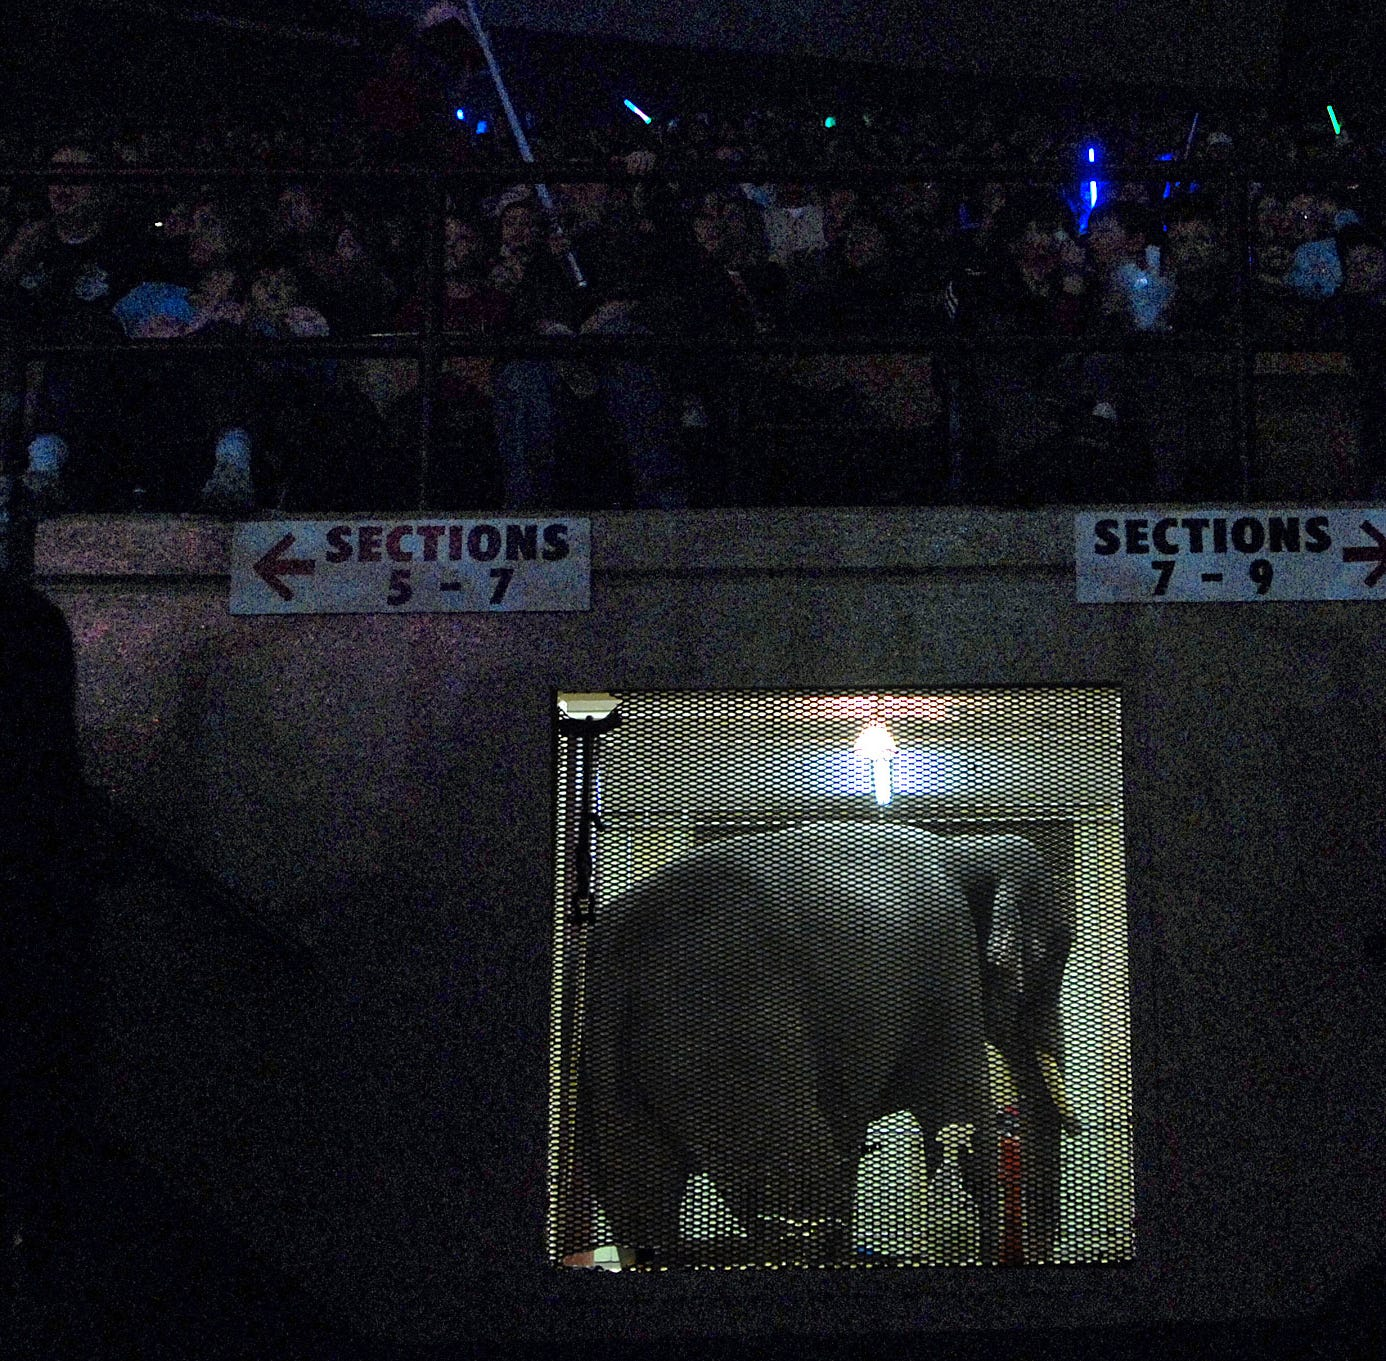 Tons of fun: In 1985, circus elephants devoured 900 Packers pompoms, sticks and all